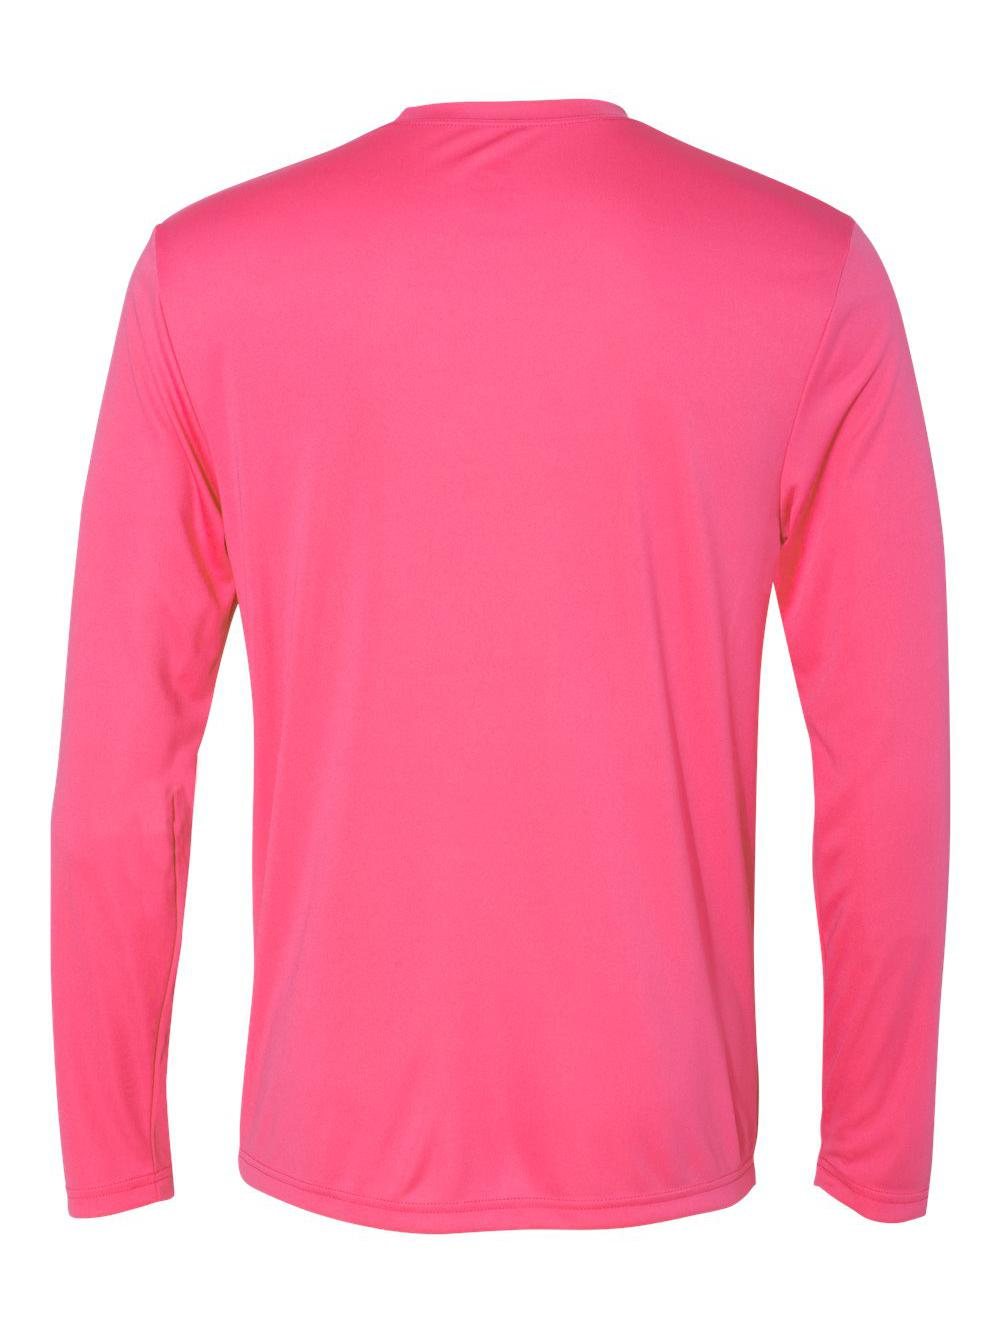 Hanes-Cool-Dri-Long-Sleeve-Performance-T-Shirt-482L thumbnail 22